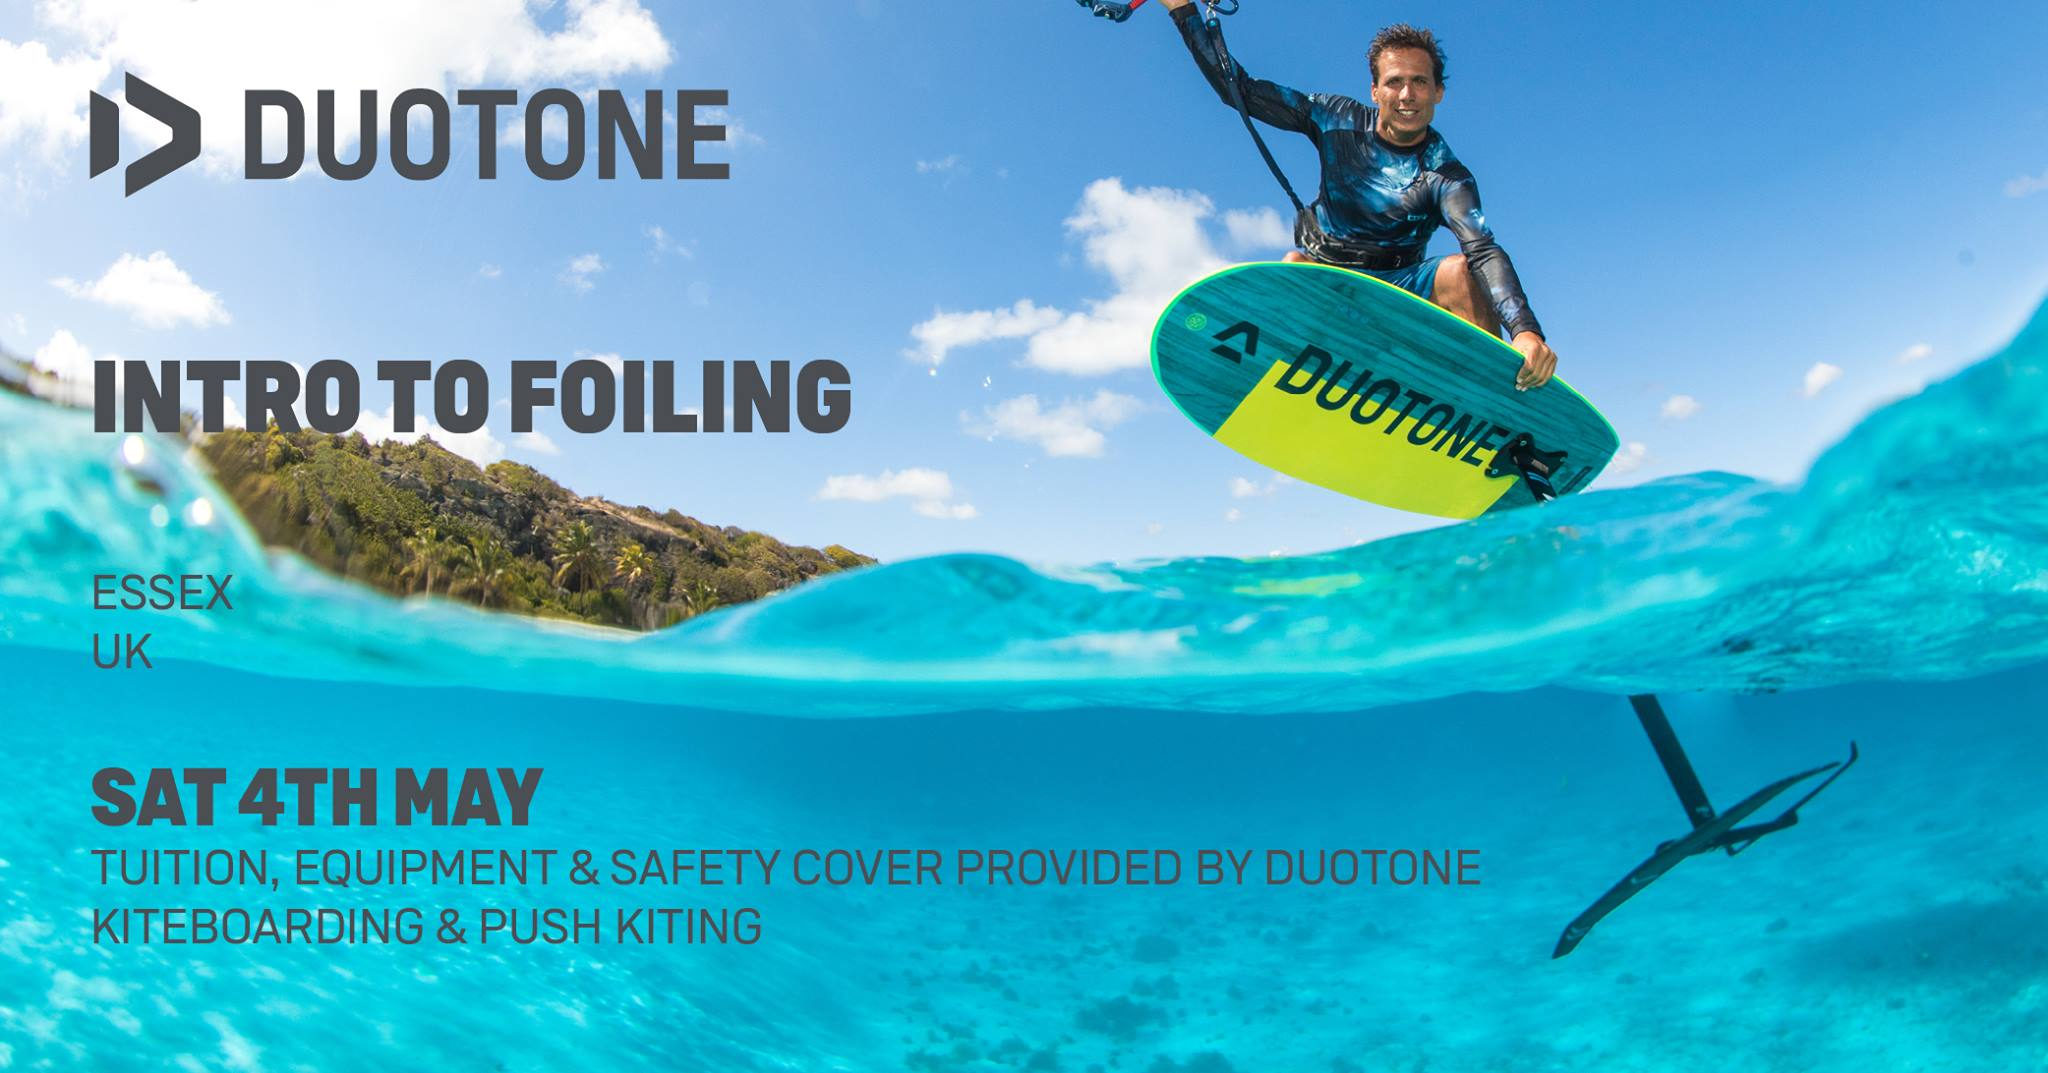 Duotone Hydrofoil Clinic in Essex – Free intro to Hydrofoiling